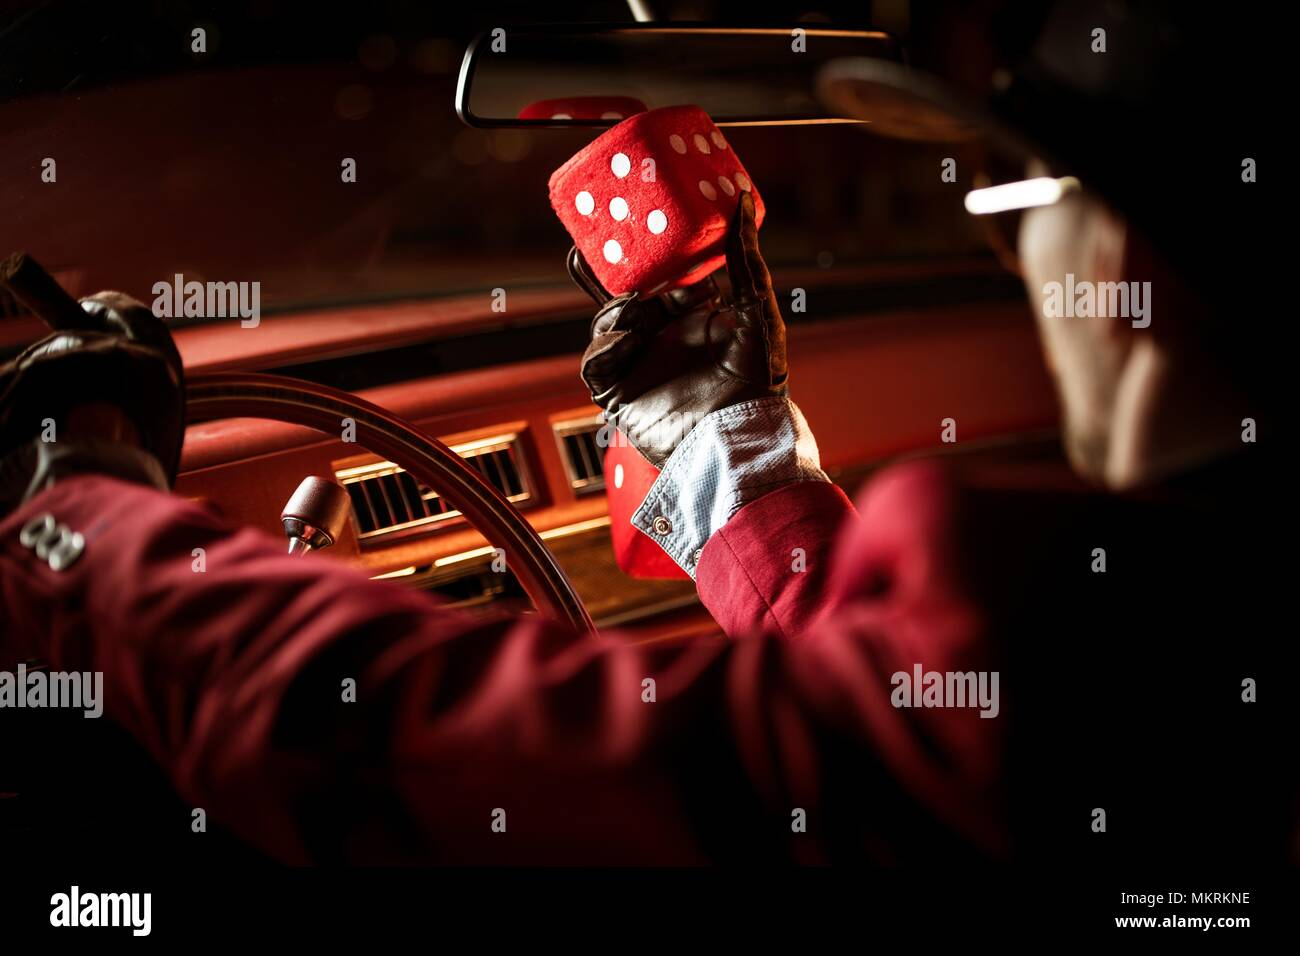 Casino Lucky Wish Concept. Casino Poker Player Talking to His Lucky Red Dice Inside the Classic Car. - Stock Image